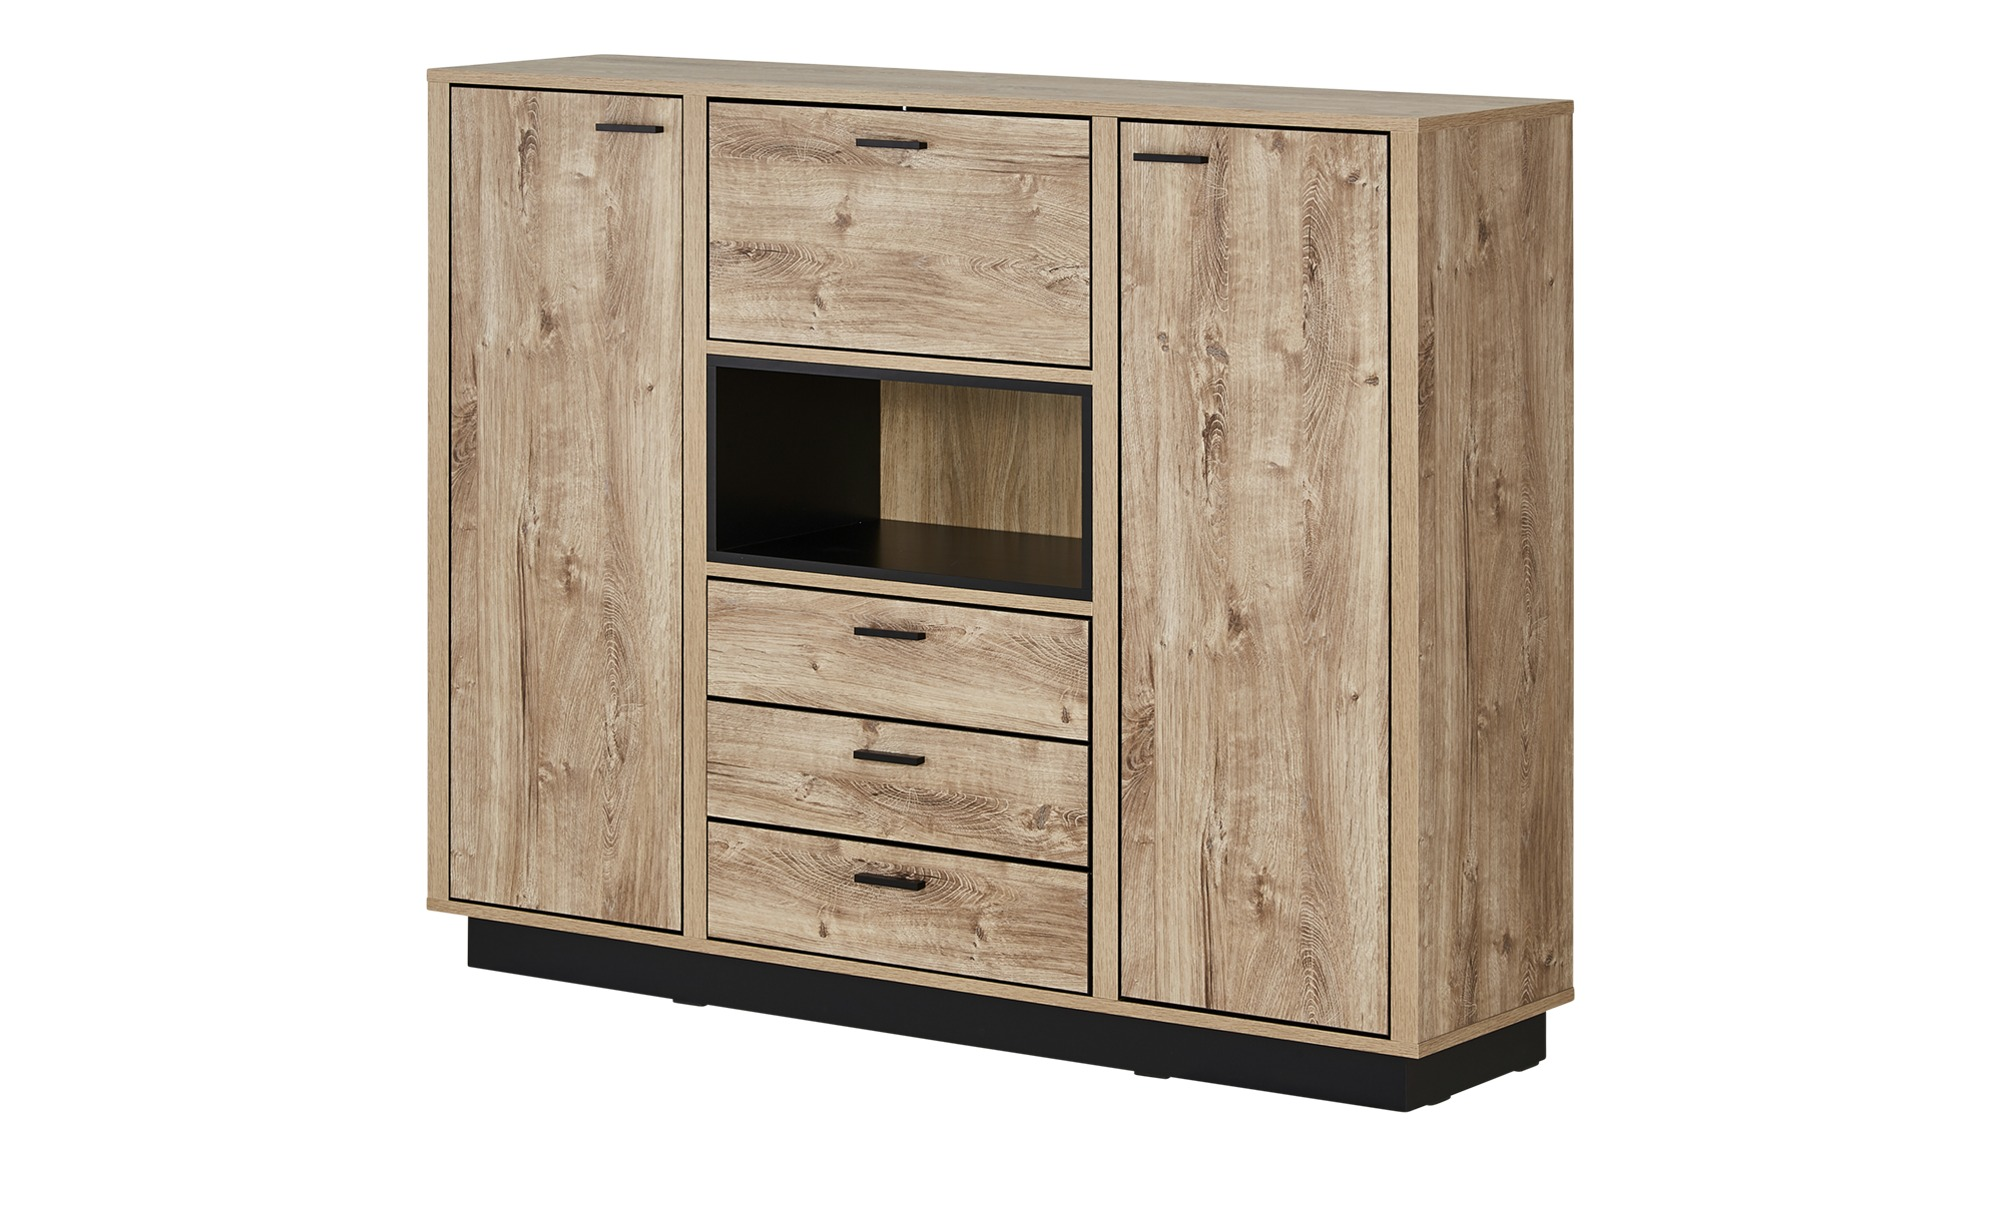 Highboard  Apriliana ¦ holzfarben ¦ Maße (cm): B: 157 H: 124 T: 40 Kommoden & Sideboards > Highboards - Höffner